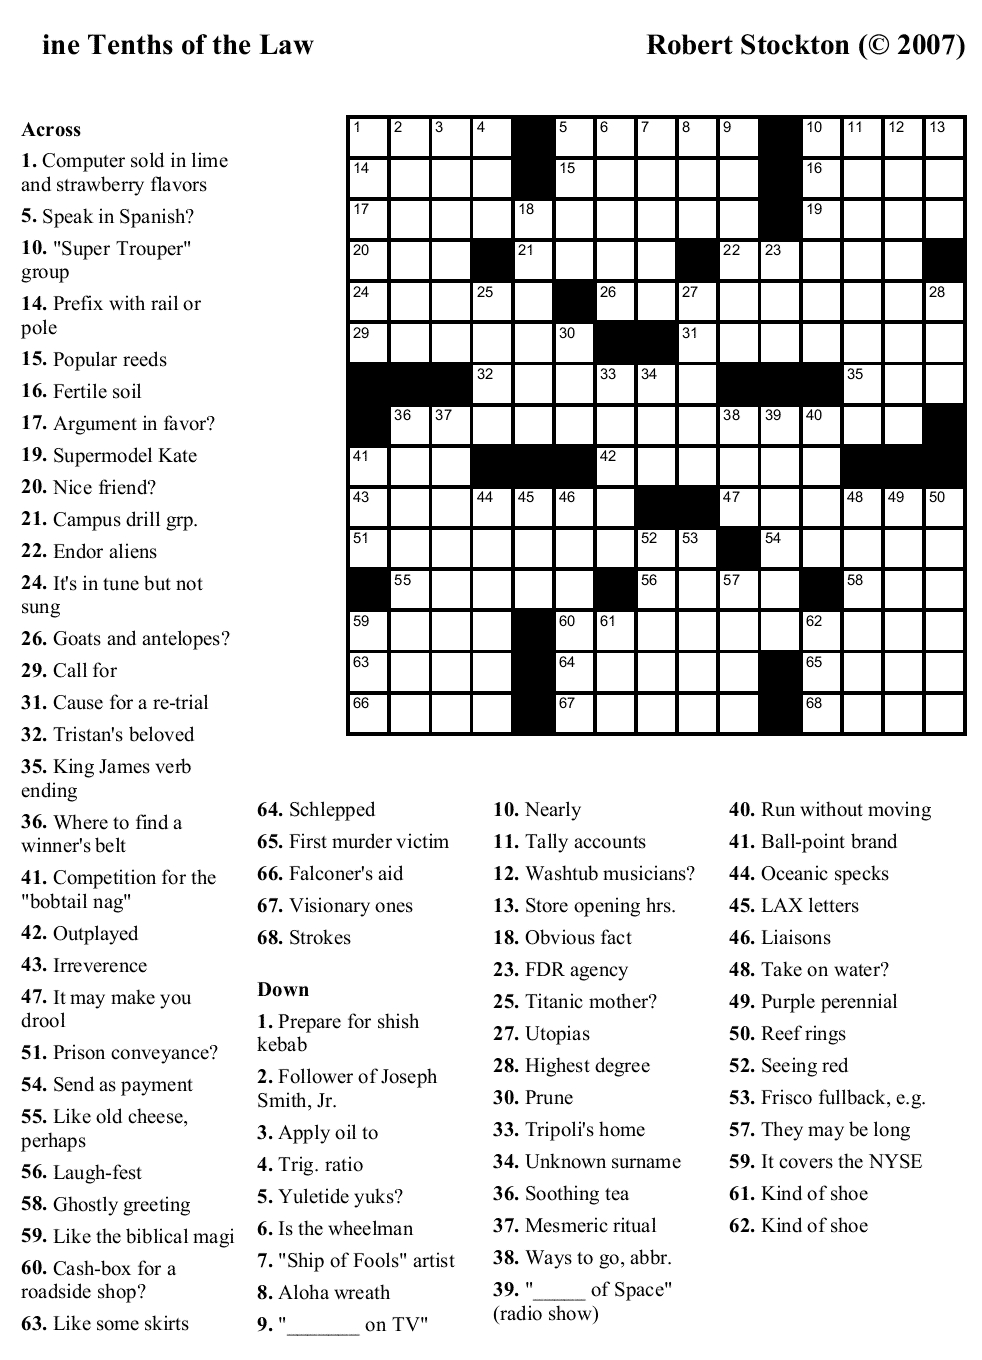 Crossword Puzzles Printable - Yahoo Image Search Results | Crossword - Printable Crossword Puzzle With Clues